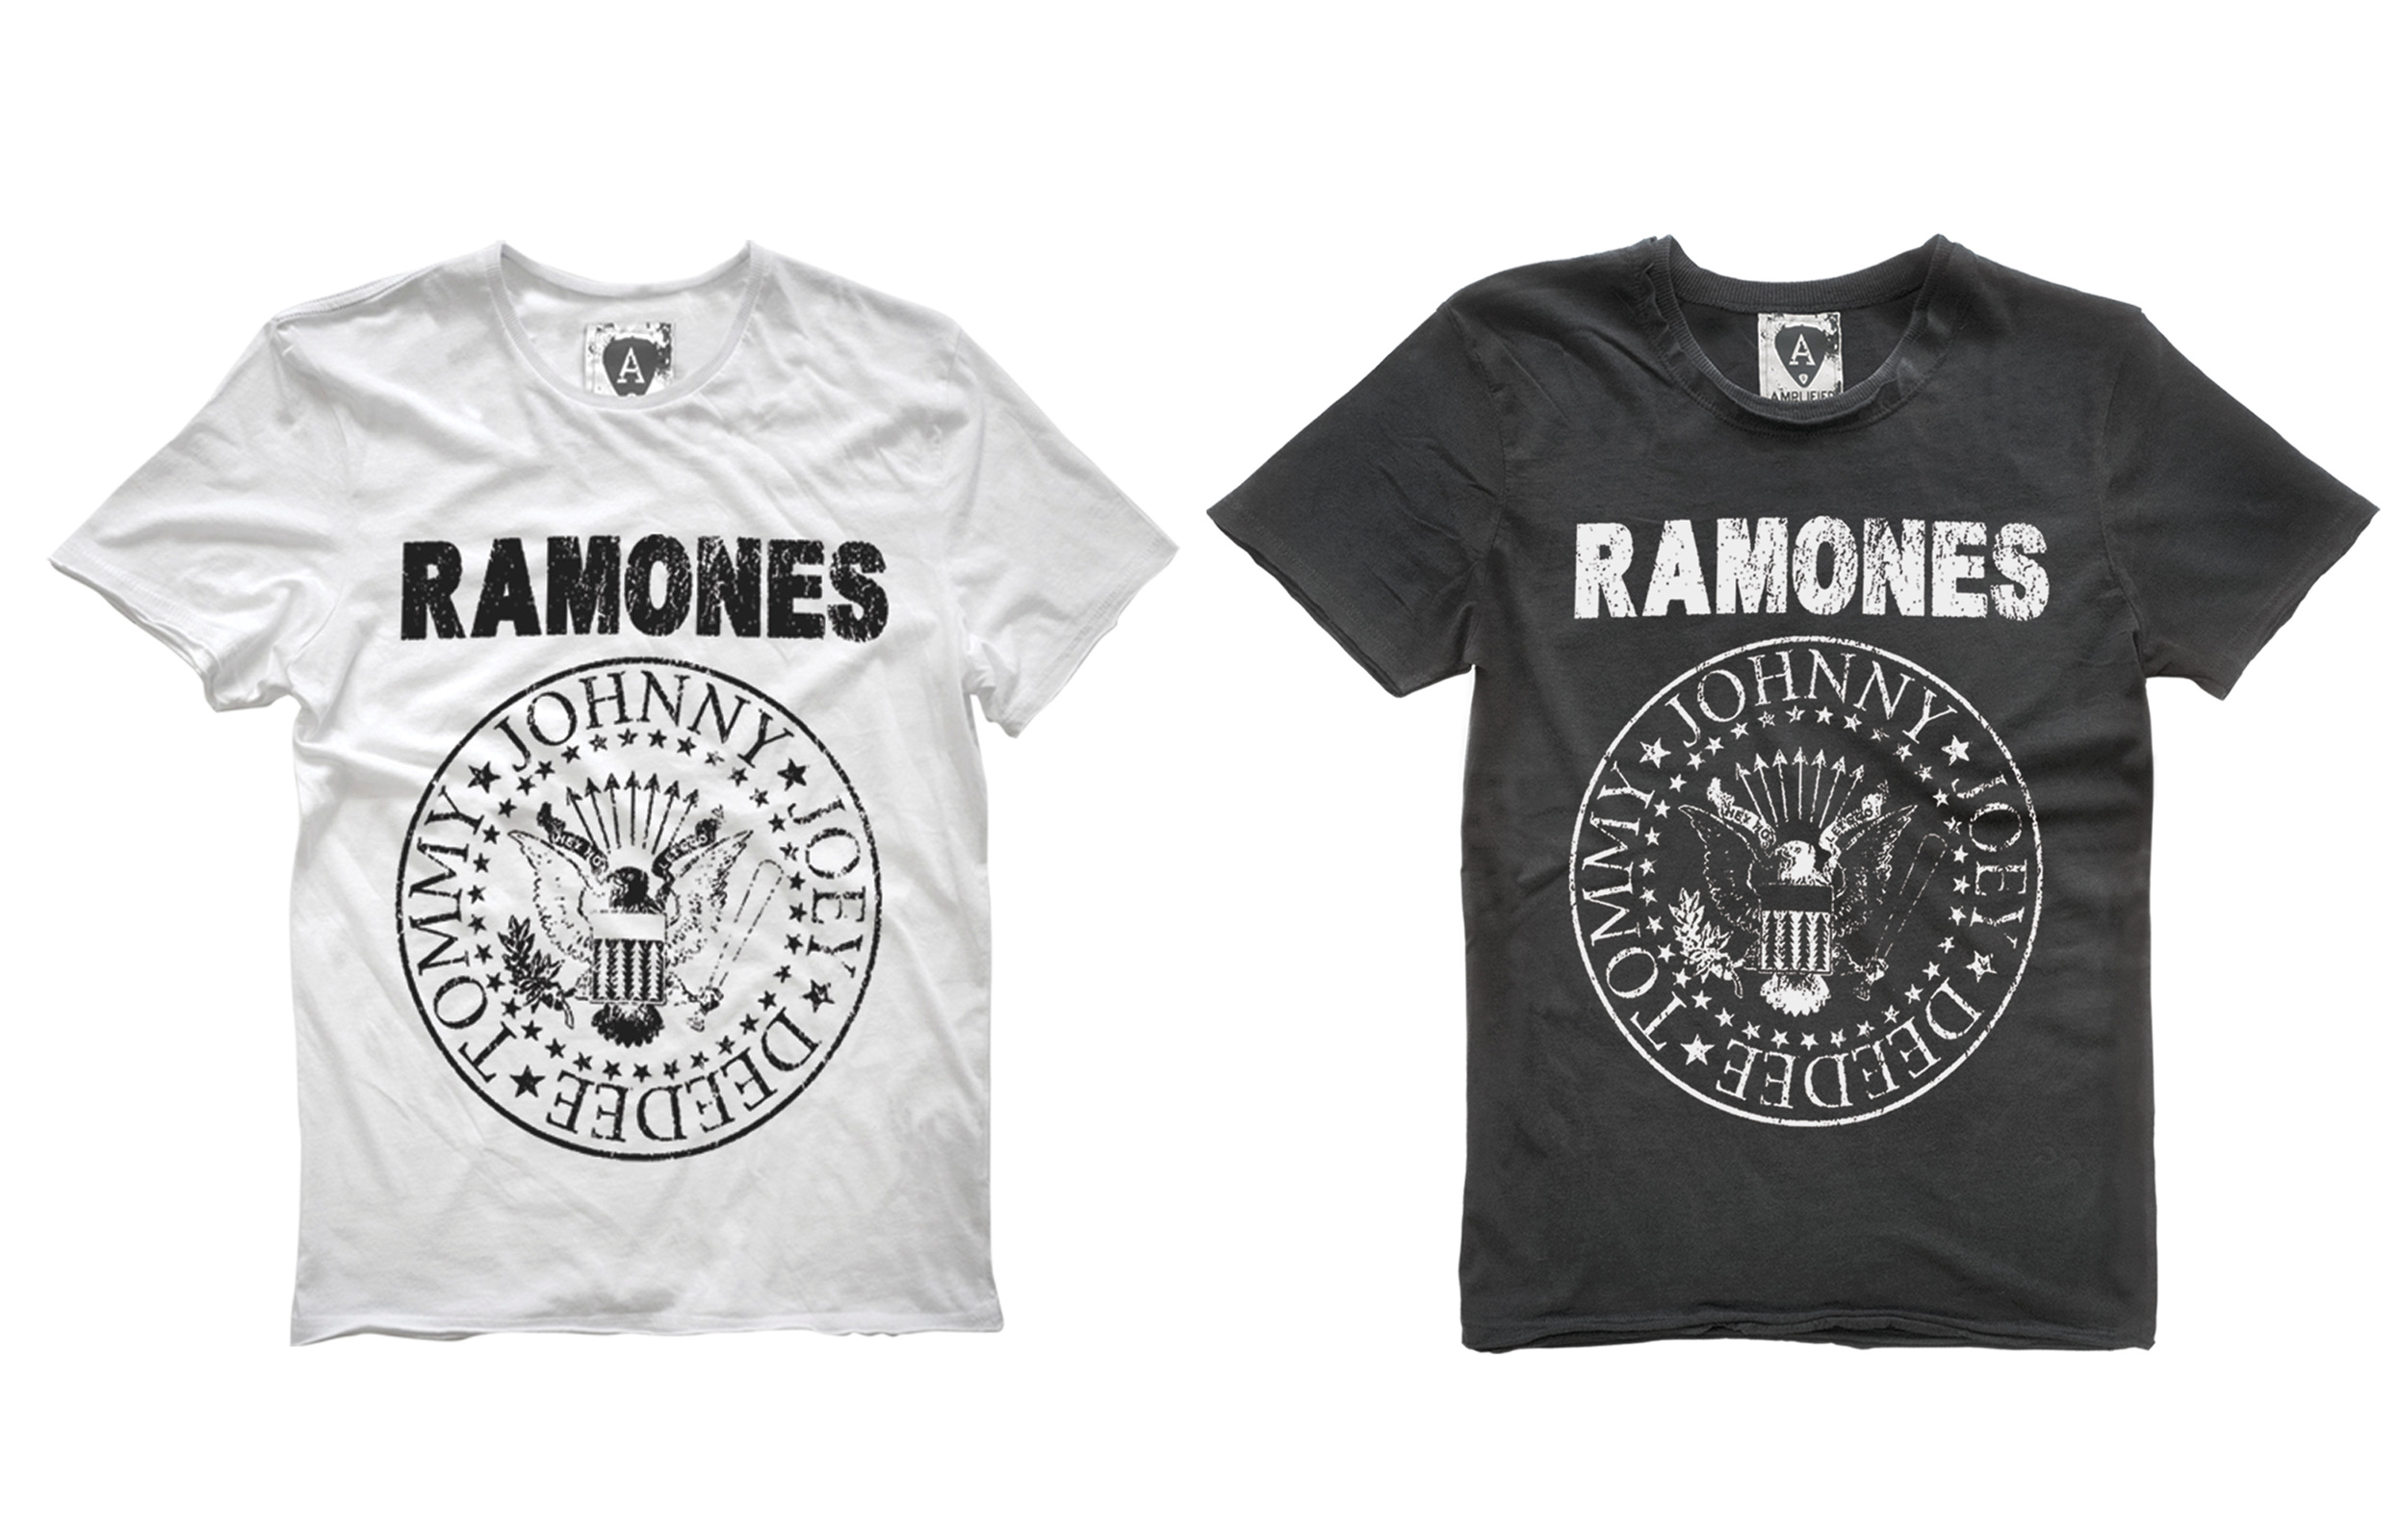 You searched for: ramones sweatshirt! Etsy is the home to thousands of handmade, vintage, and one-of-a-kind products and gifts related to your search. No matter what you're looking for or where you are in the world, our global marketplace of sellers can help you find unique and affordable options.